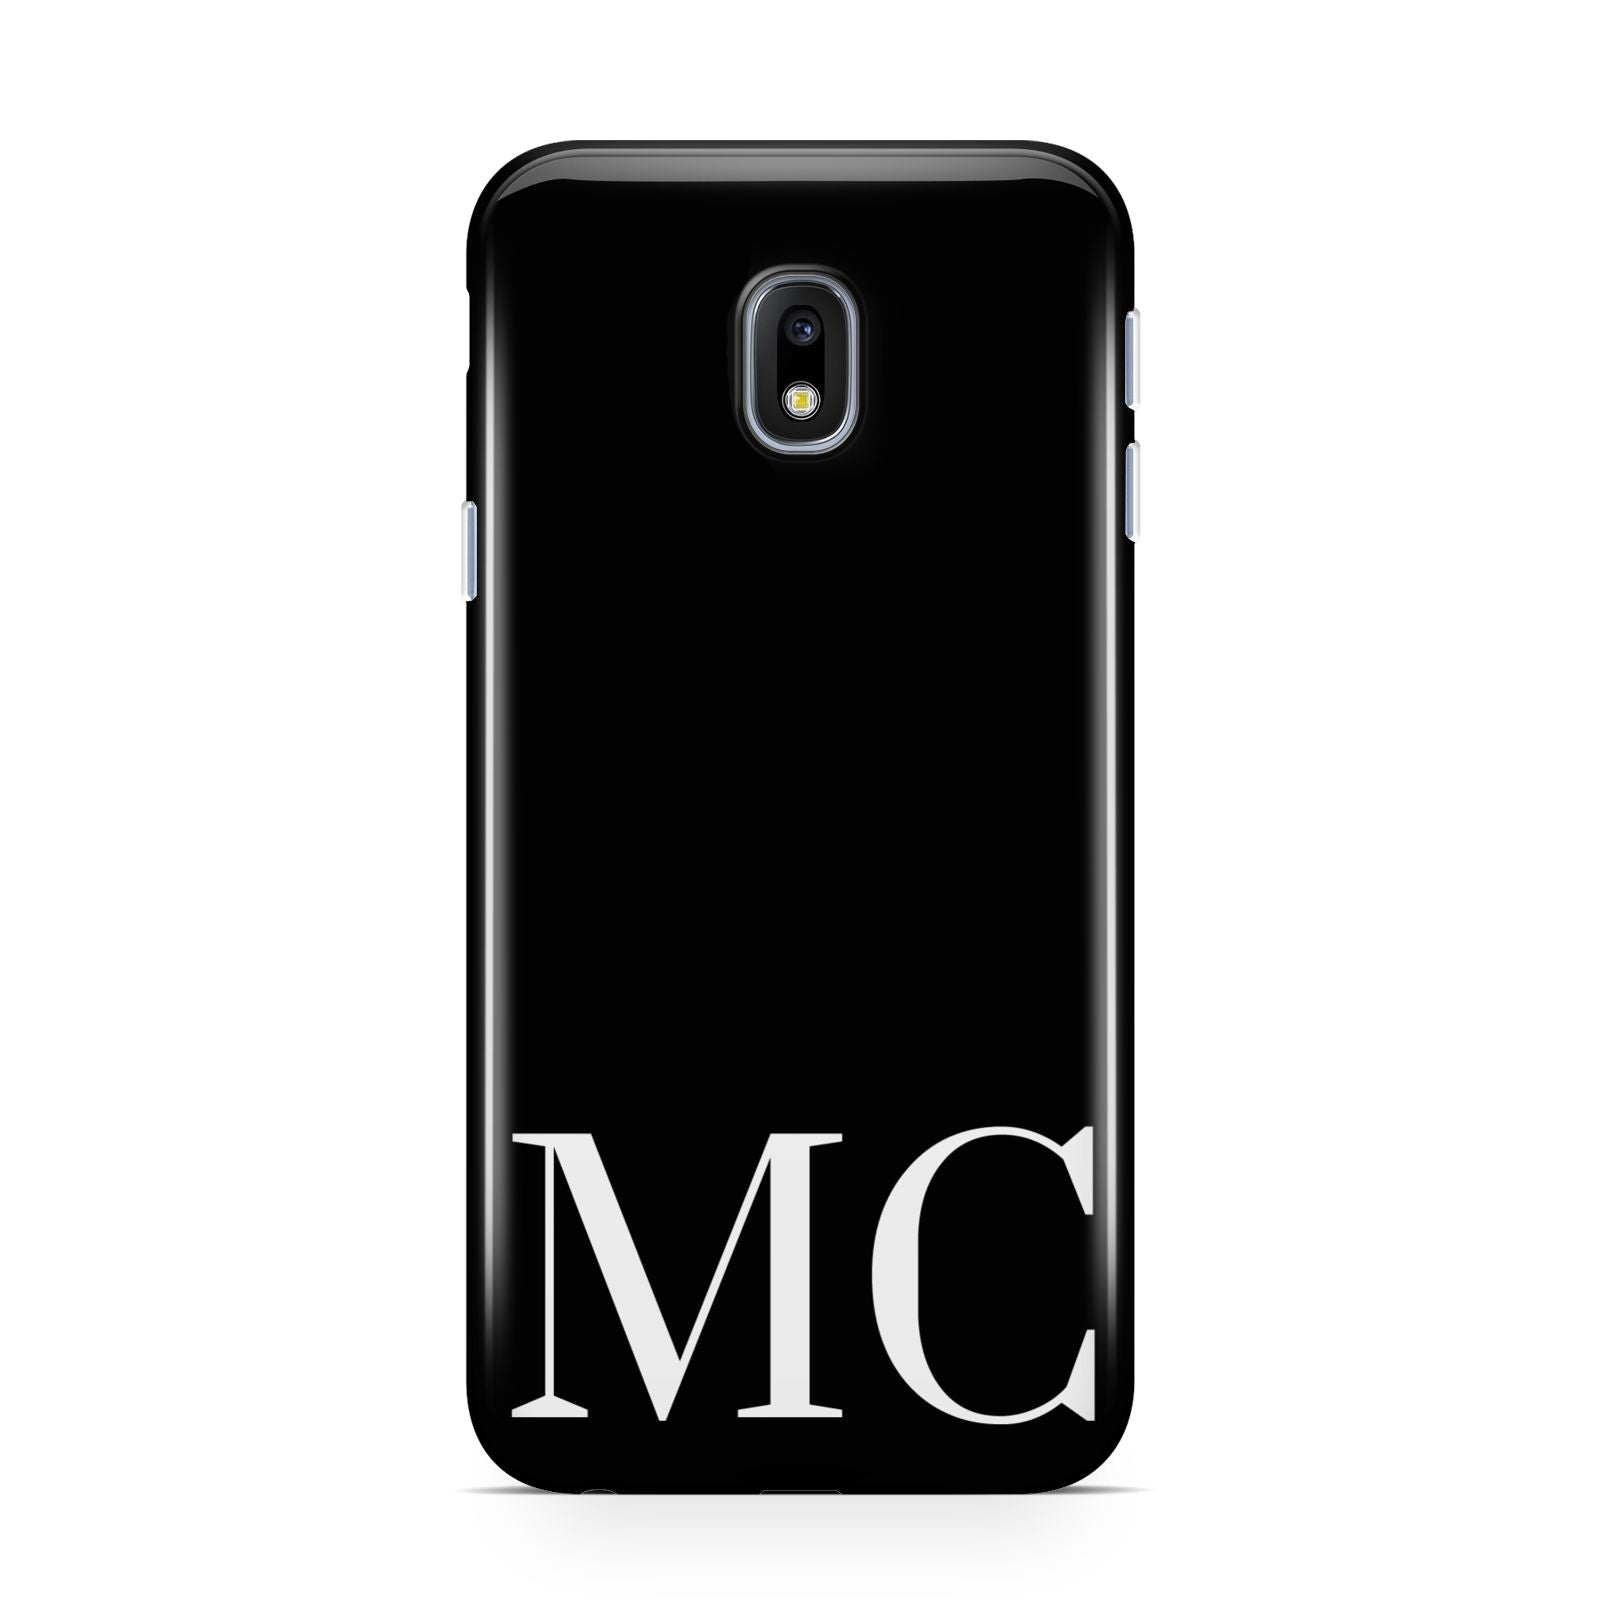 Initials Personalised 1 Samsung Galaxy J3 2017 Case